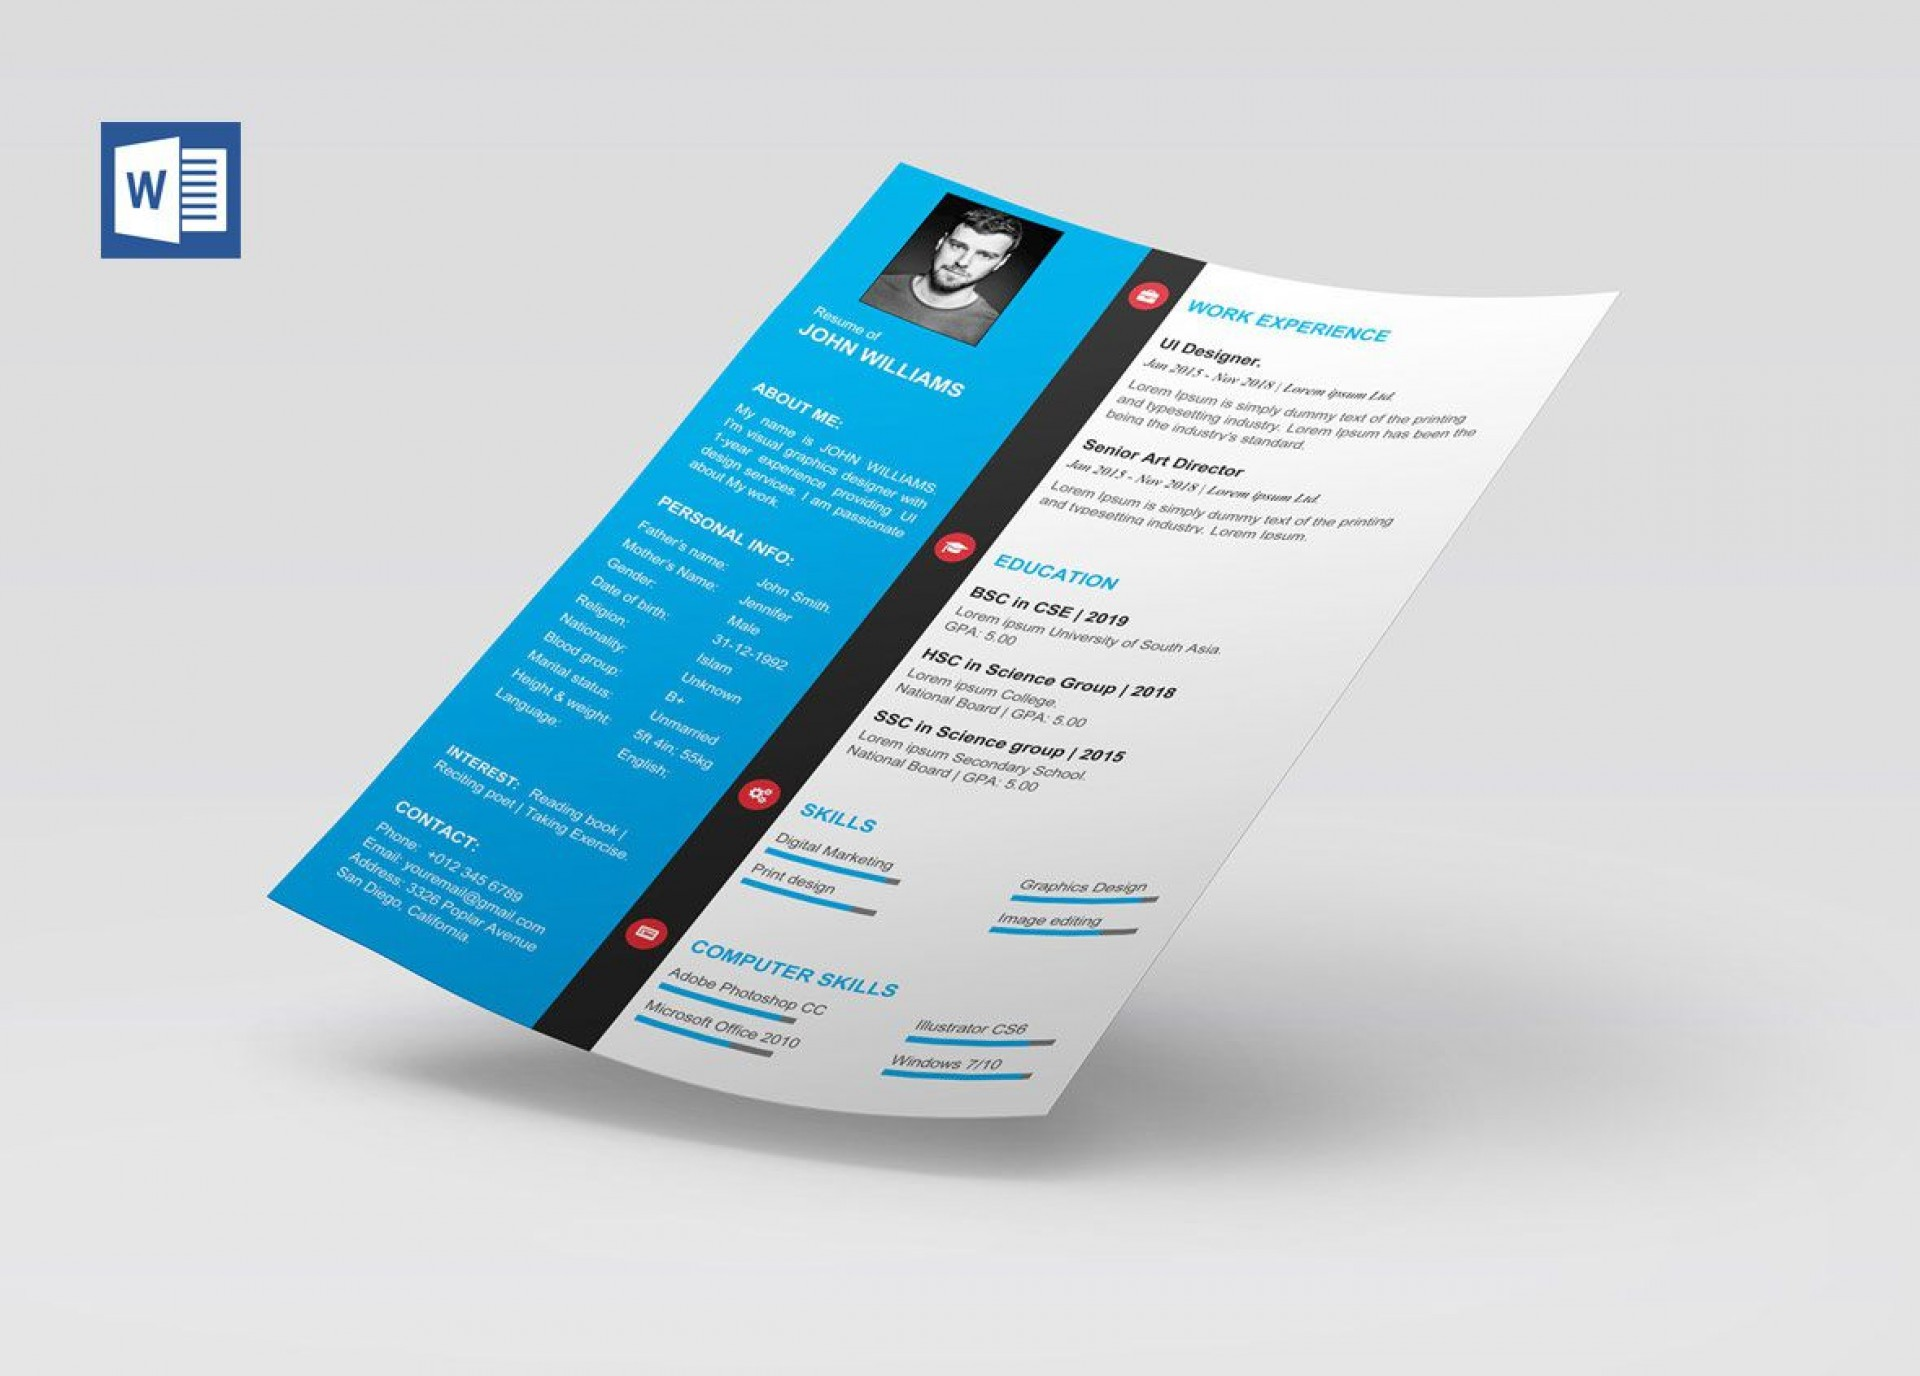 006 Unforgettable Free M Word Resume Template Highest Quality  Templates 50 Microsoft For Download 20191920